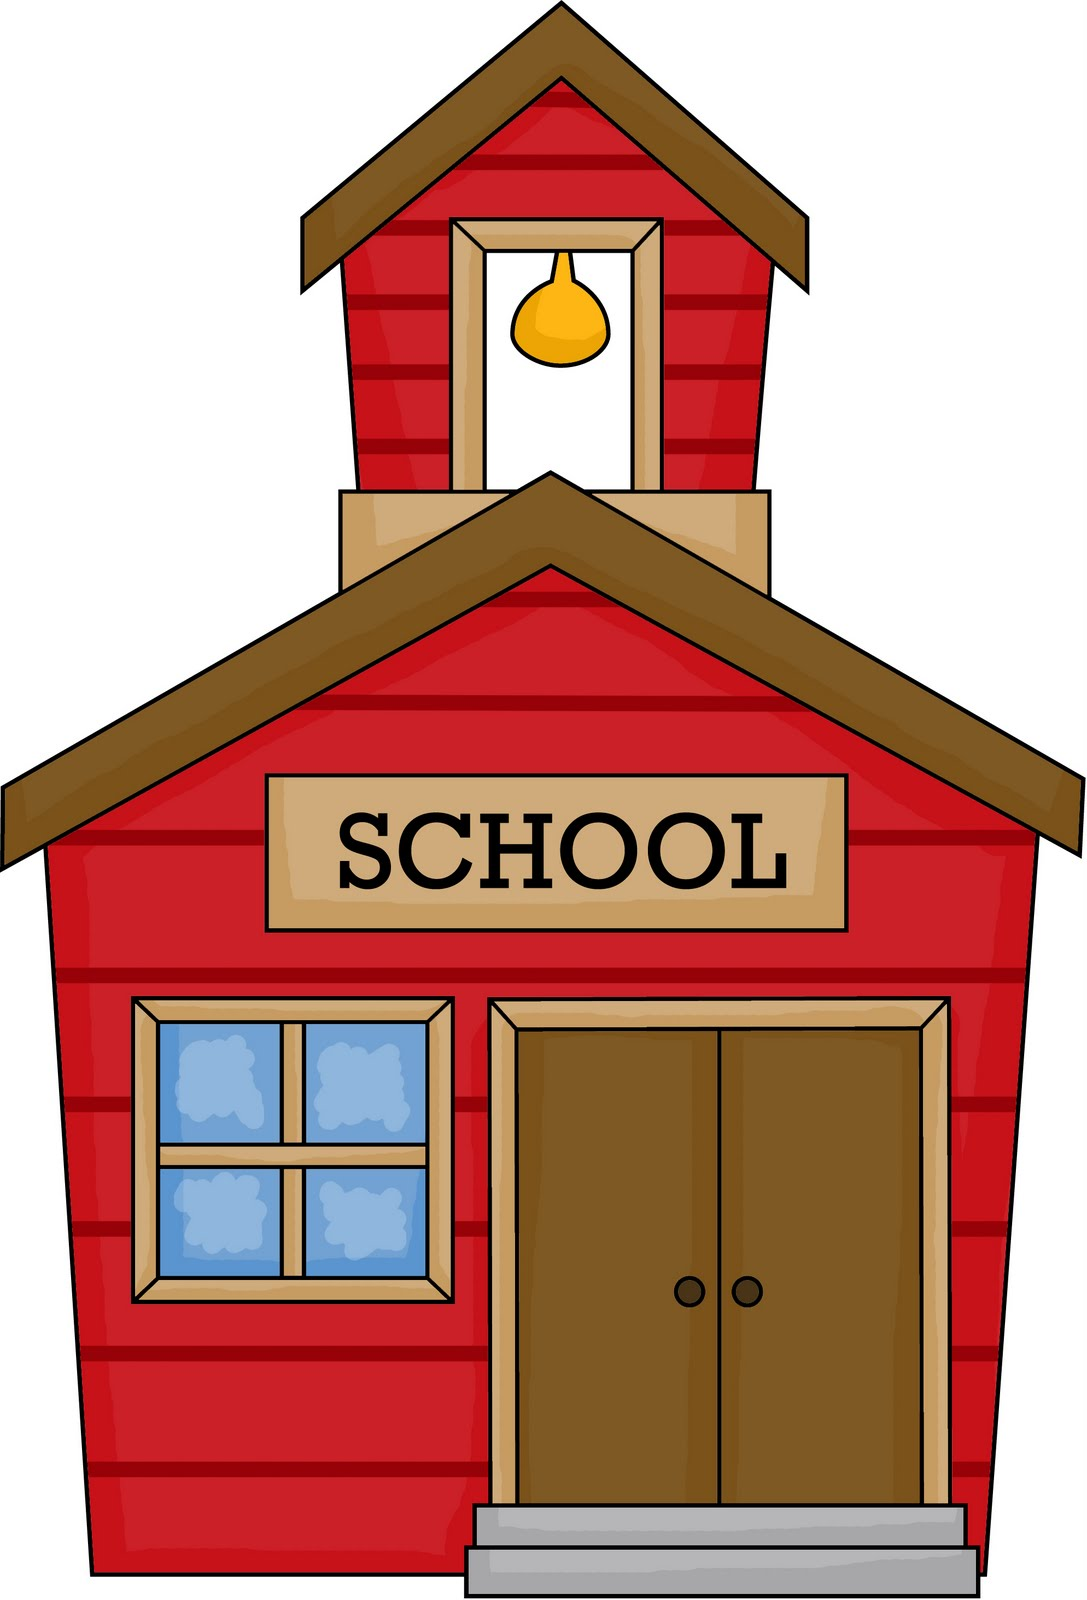 school house images-school house images-4